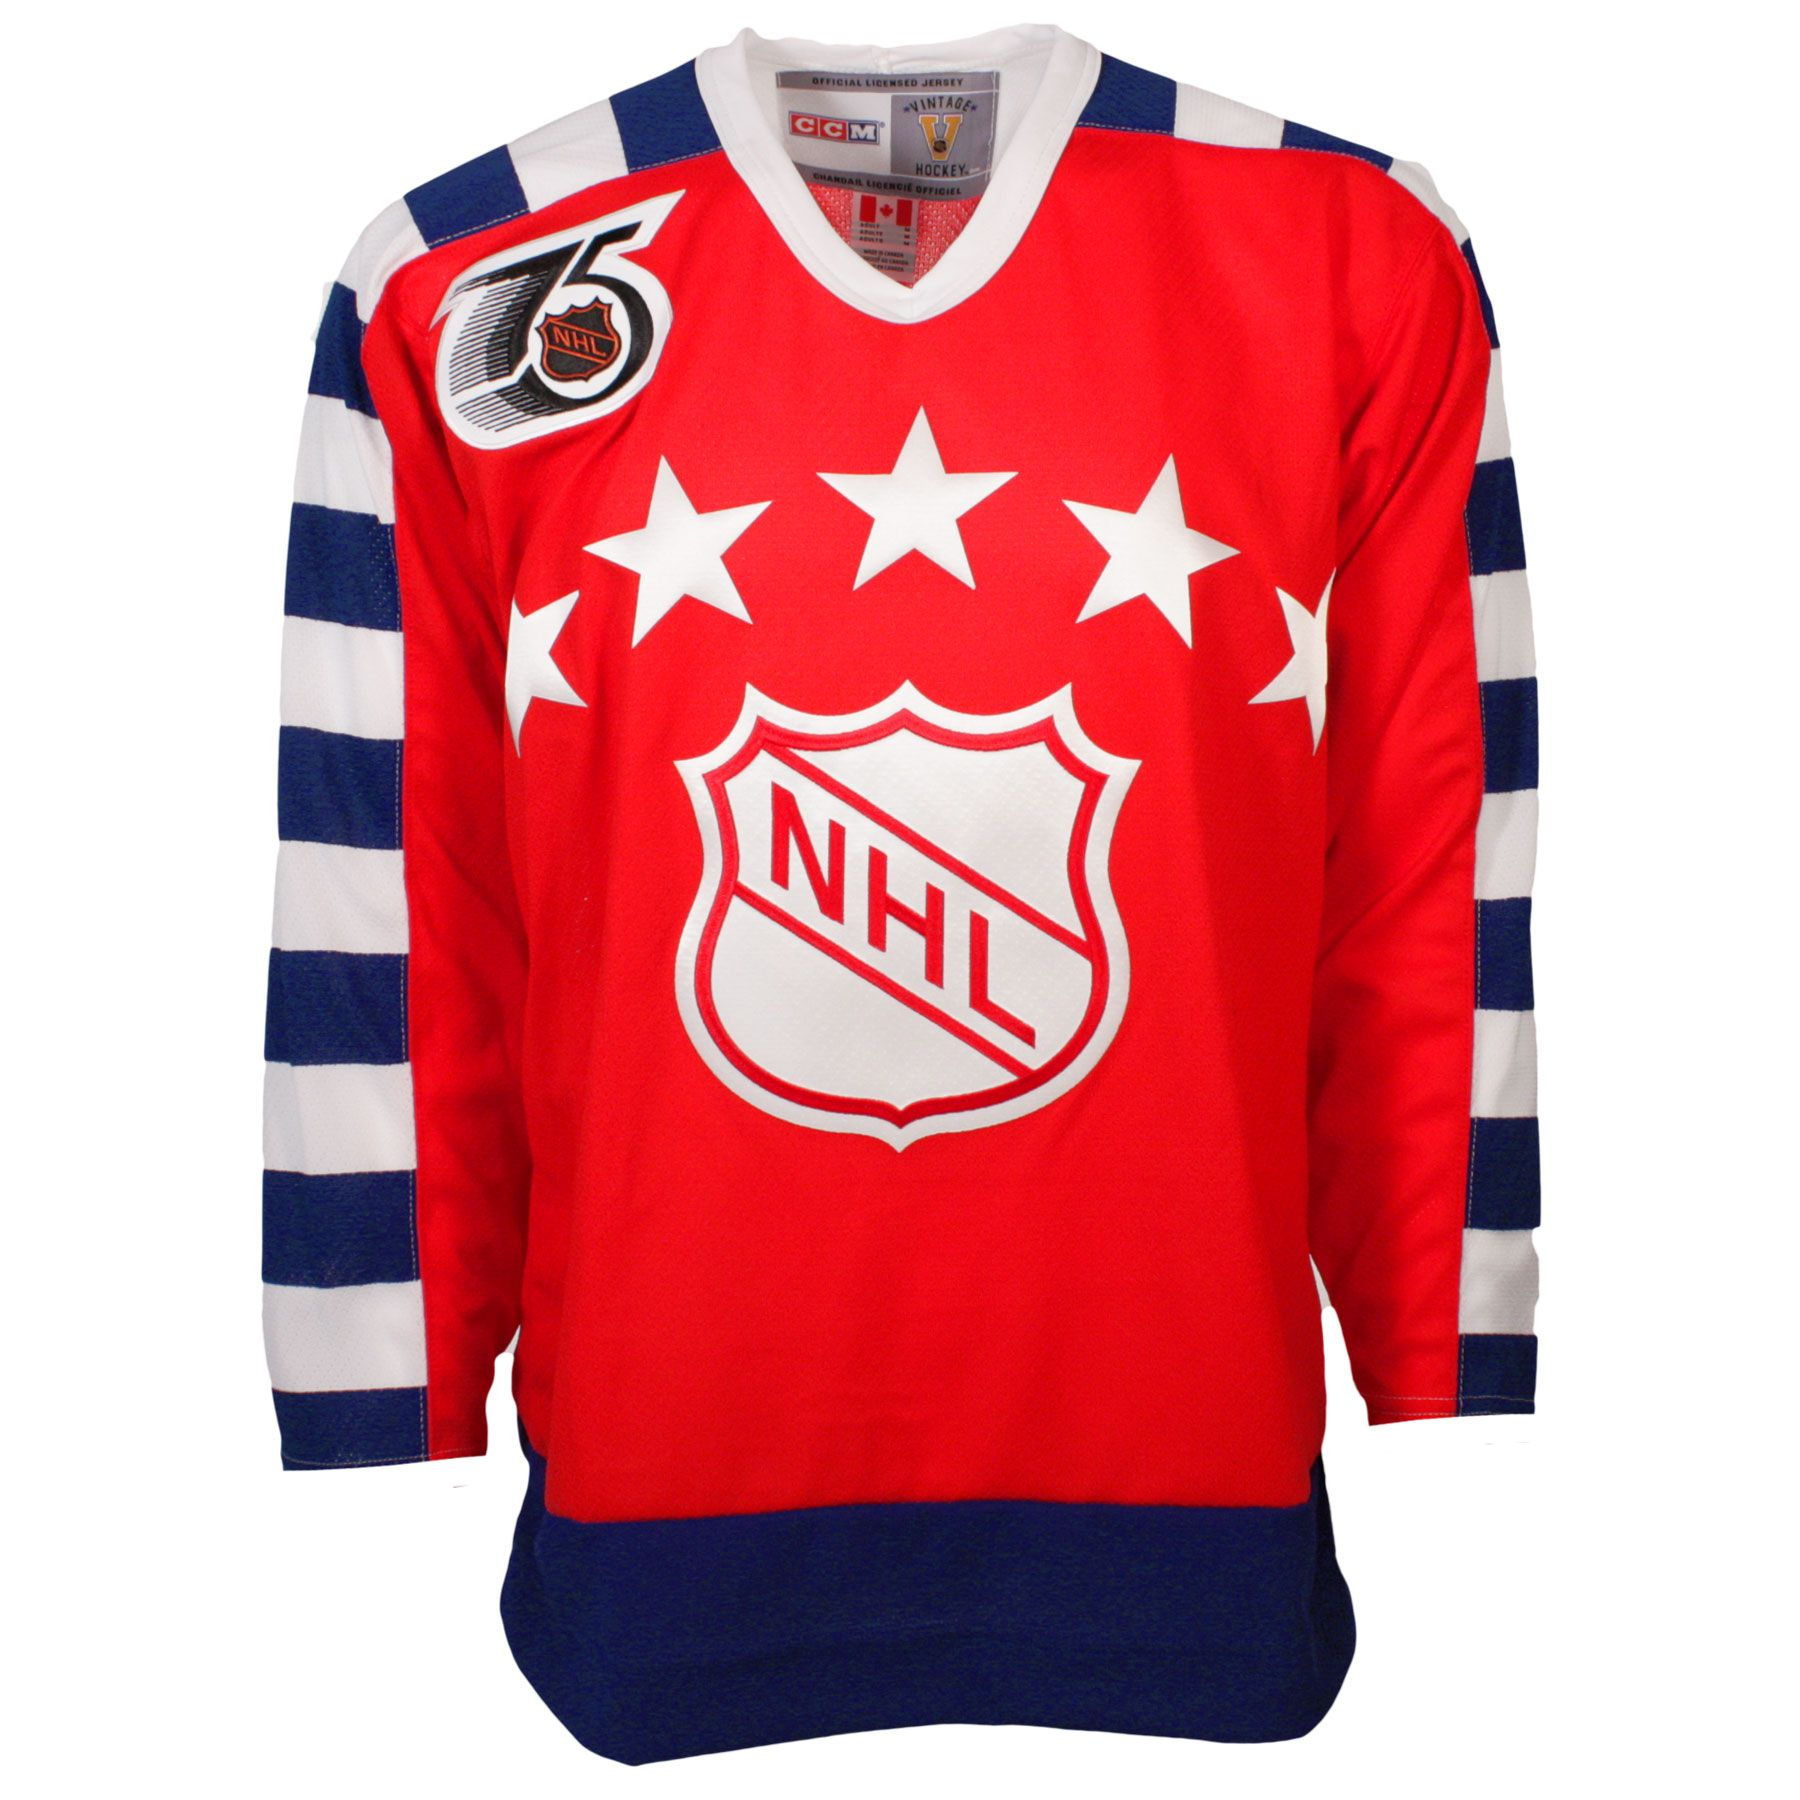 ... best price nhl all star vintage replica jersey 1992 away 0f747 61d1b 5a566e09d